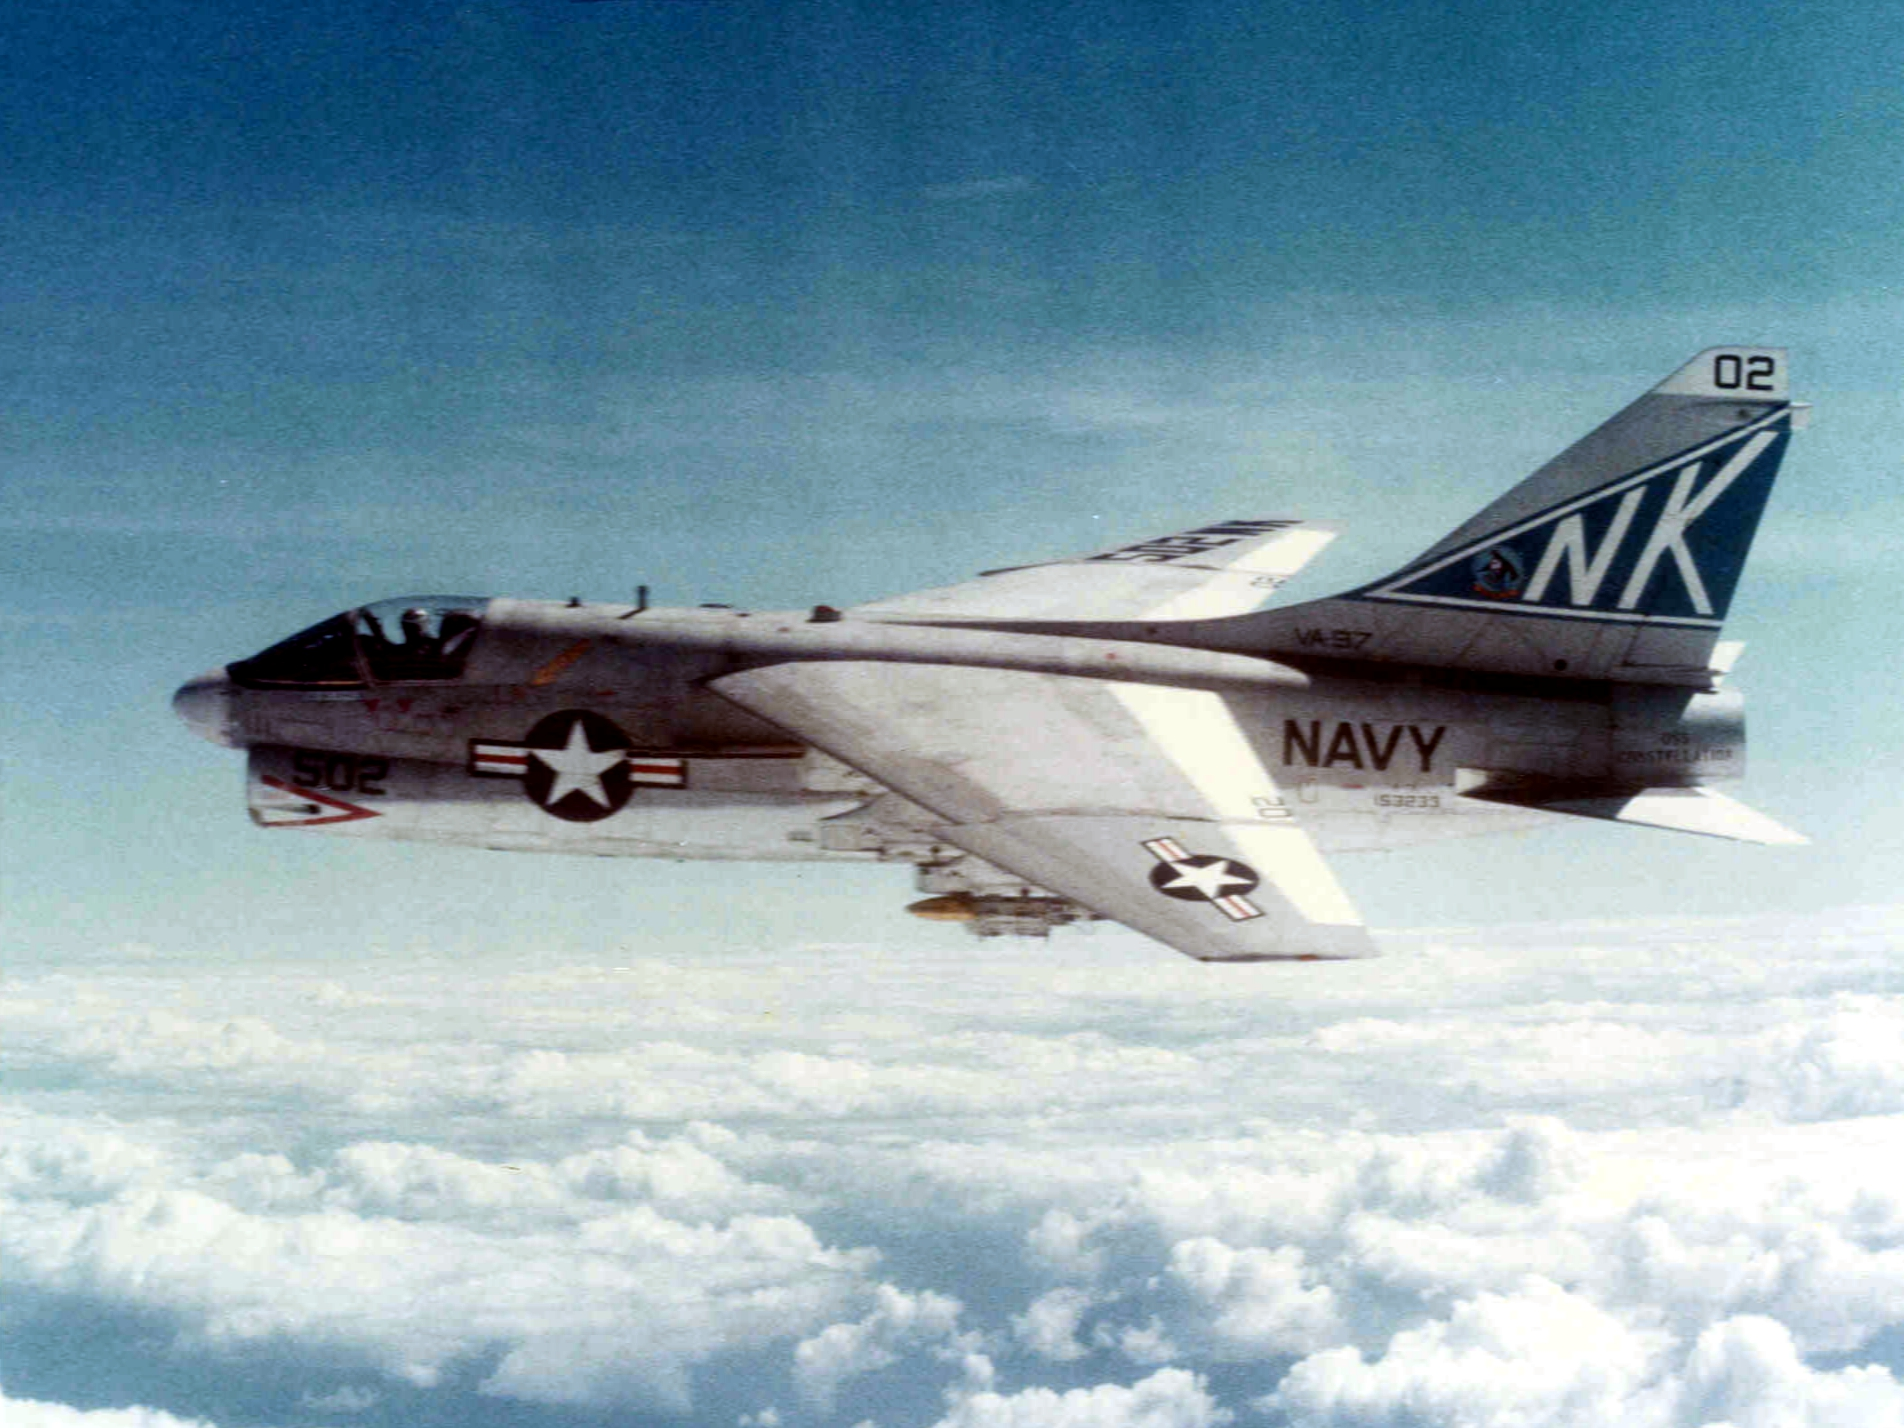 down 2 helicopter with File A 7a Corsair Ii Of Va 97 Over Gulf Of Tonkin 1968 on File Defense gov News Photo 110710 F RG147 1195   Secretary of Defense Leon E  Pa ta steps off a UH 60 Blackhawk helicopter at C  Victory  Iraq  on July 10  2011 additionally 1125772489555 moreover 7444837156 as well File US Navy 050709 N 0050T 018 U S  Navy Chaplain  Cmdr  Ab Bihn Nguyen delivers an invocation during a funeral service held in honor of Senior Chief  SEAL  Daniel R  Healy  at St  Charles Borromeo Catholic Church moreover Nuke.